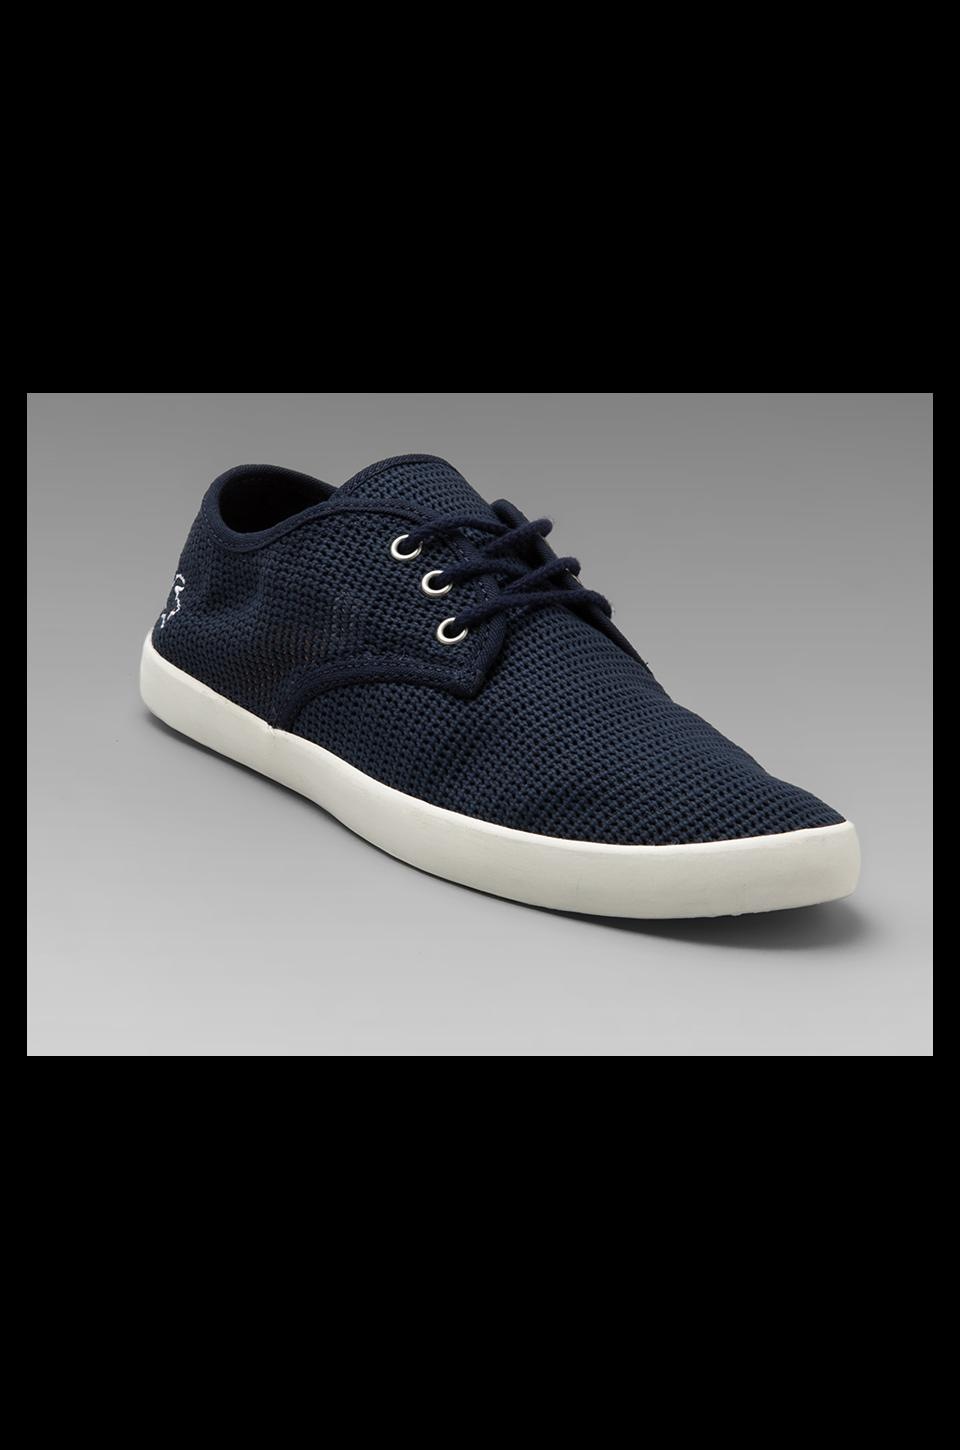 Lacoste Aristide 10 in Dark Blue